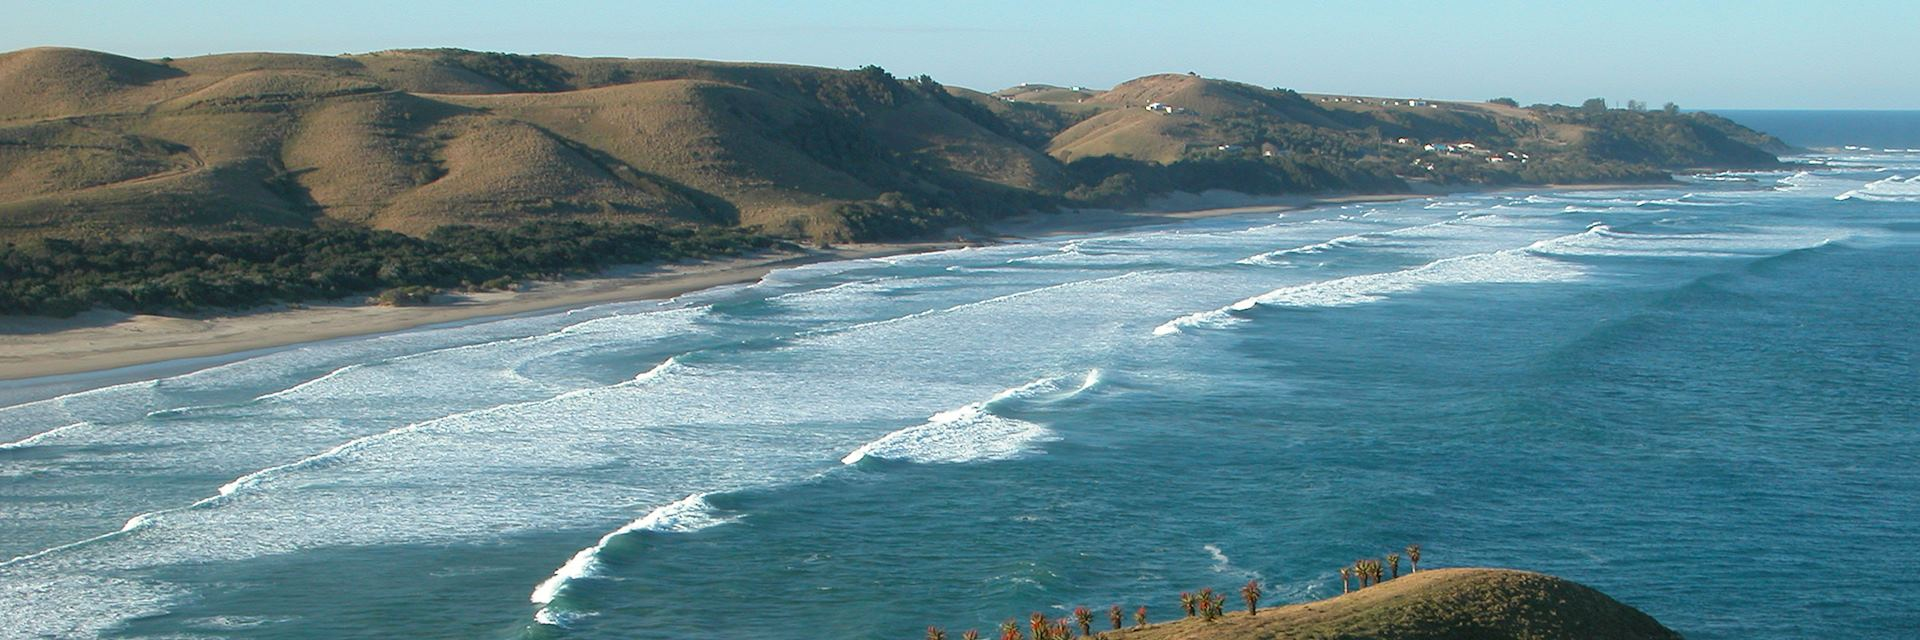 Mouth of the Umzimvubu River, Port St Johns